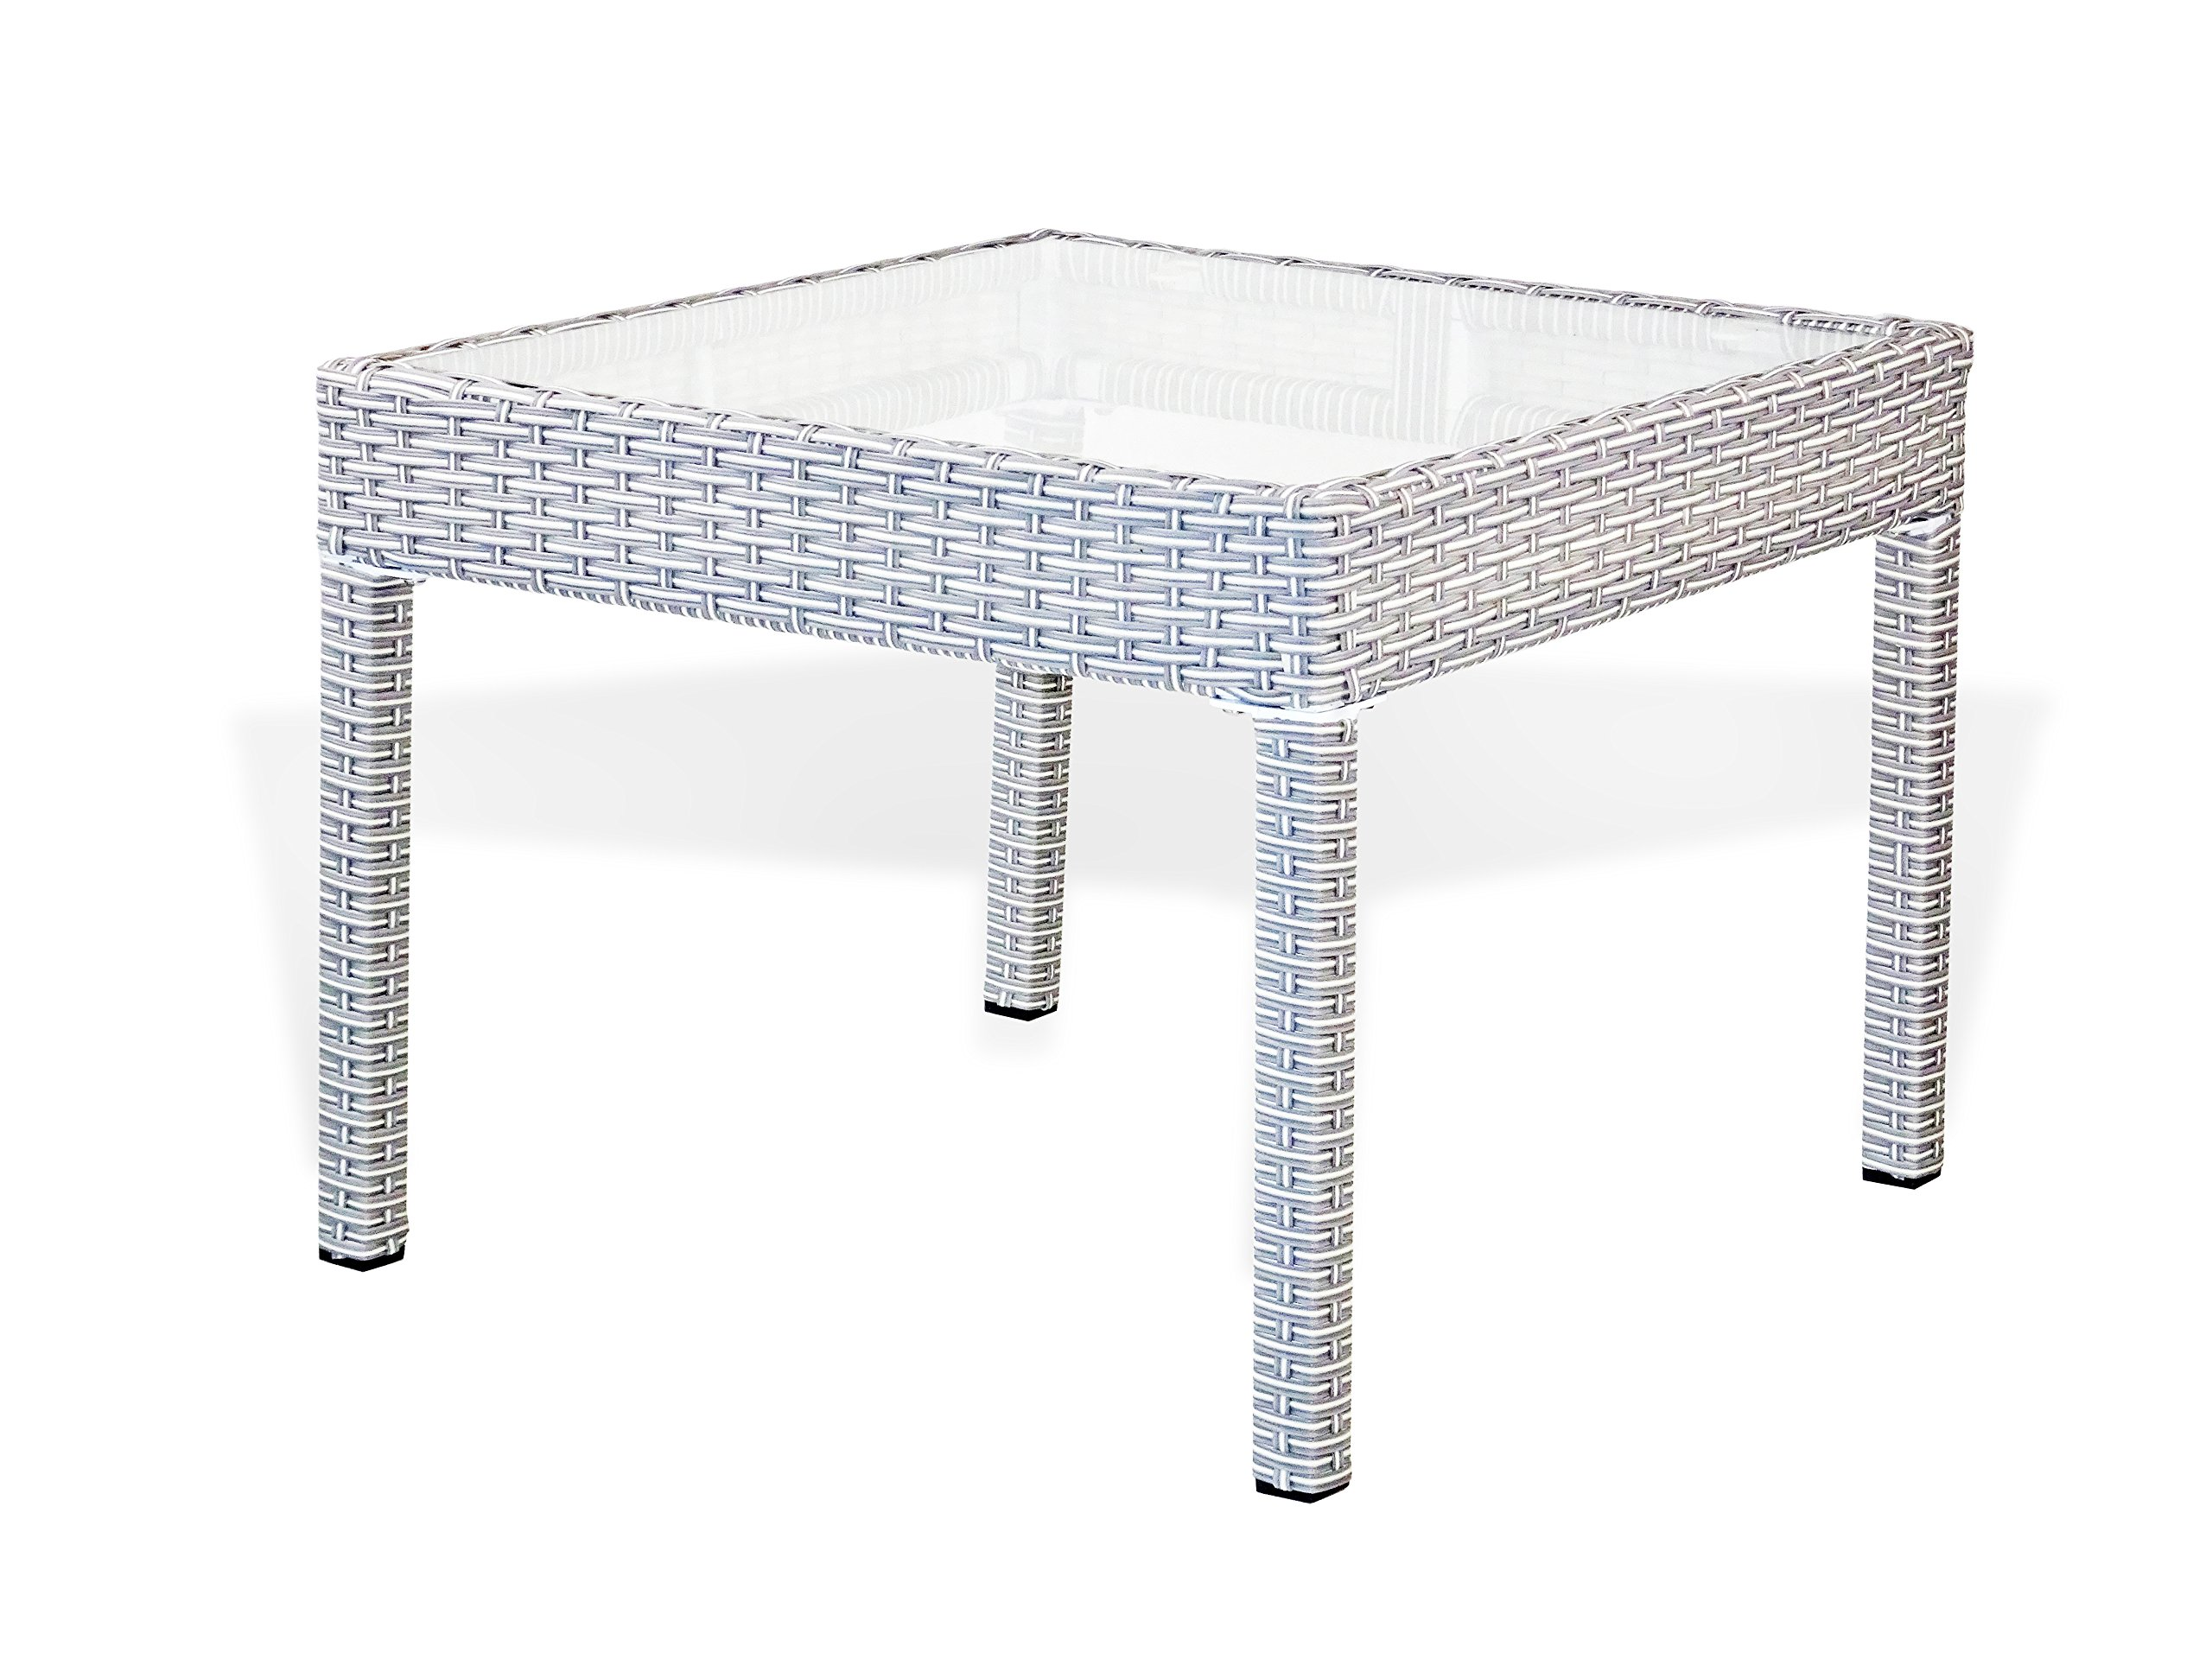 Outdoor Patio Wicker Square Coffee Table w/Glass Resin Yard Garden Furniture, Gray